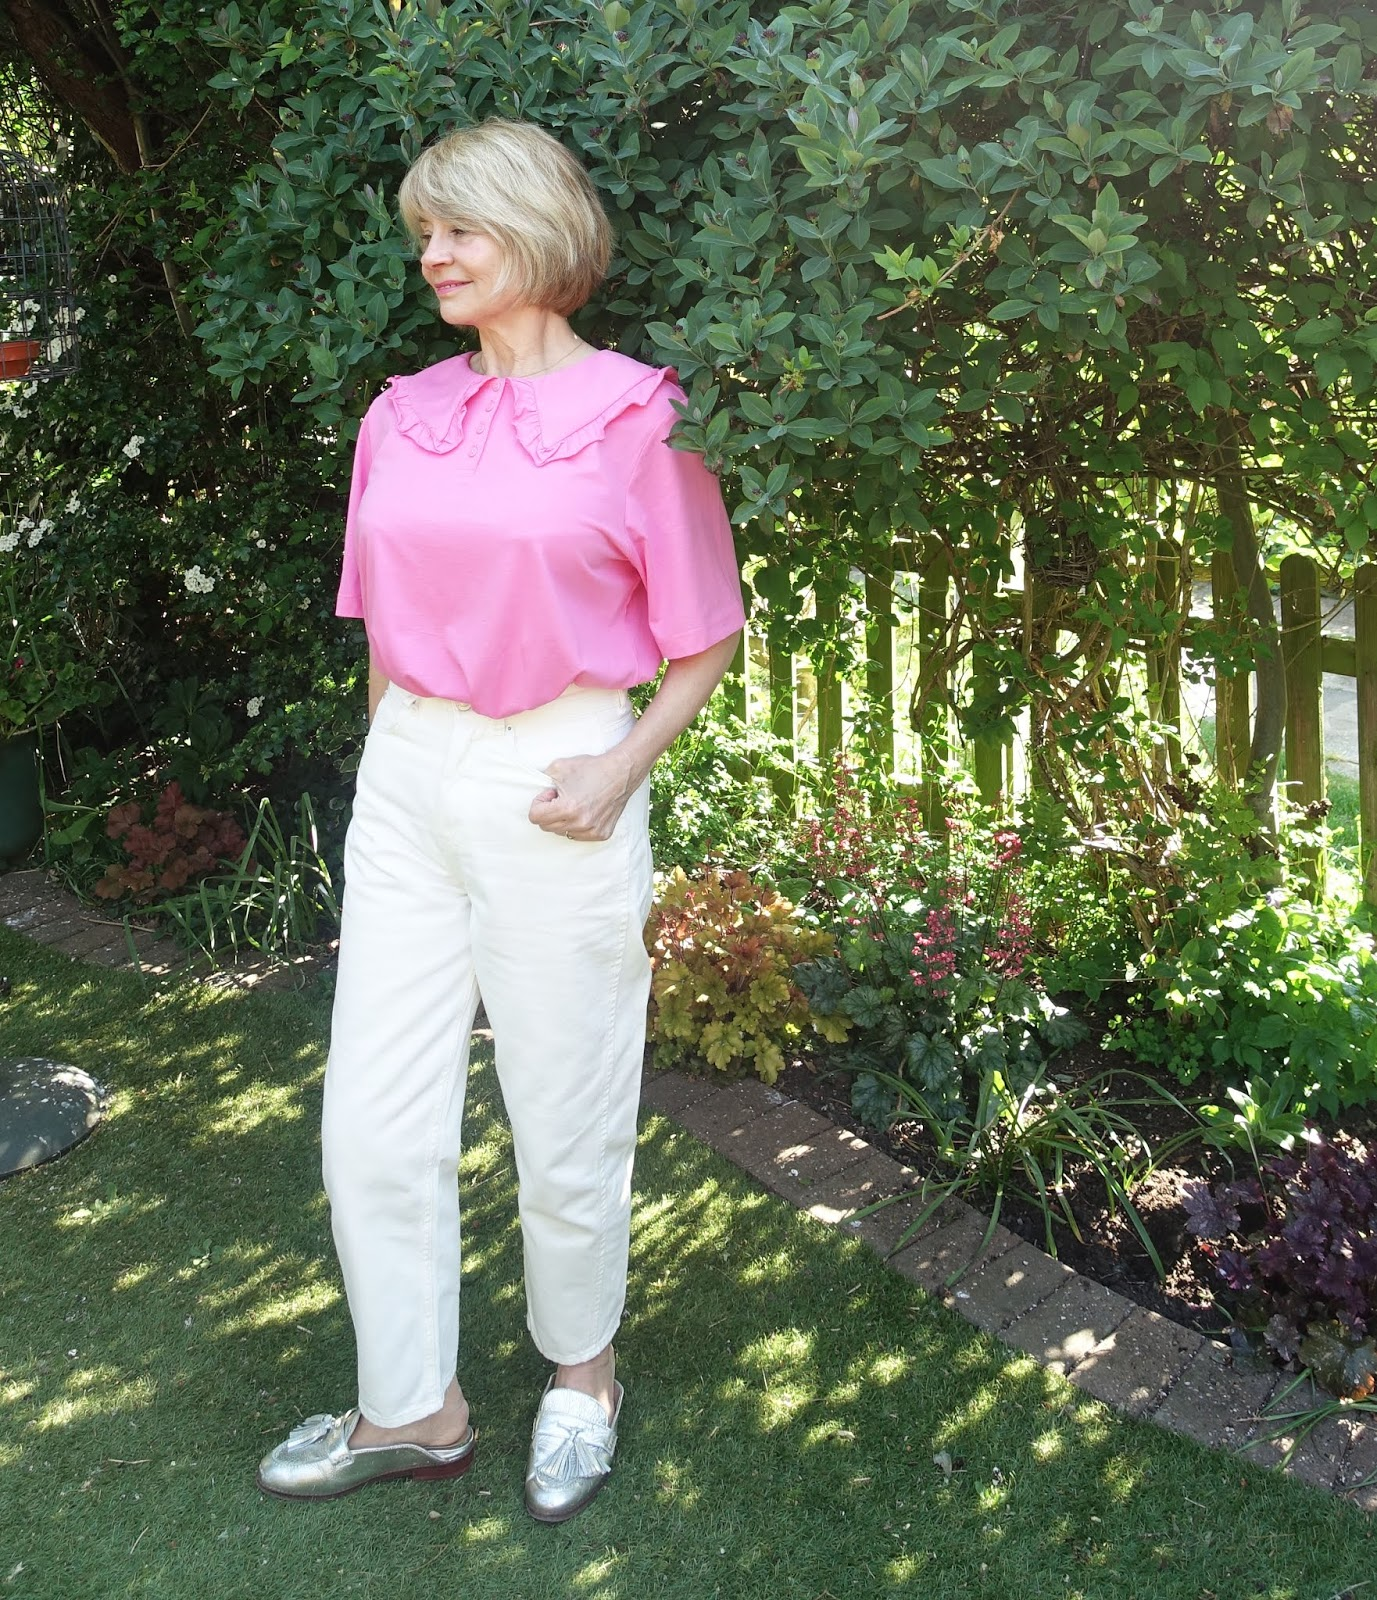 Over 50s blogger Gail Hanlon in summer 2020 essential, a statement collar top, perfect for video calls, worn with white jeans and backless silver loafers